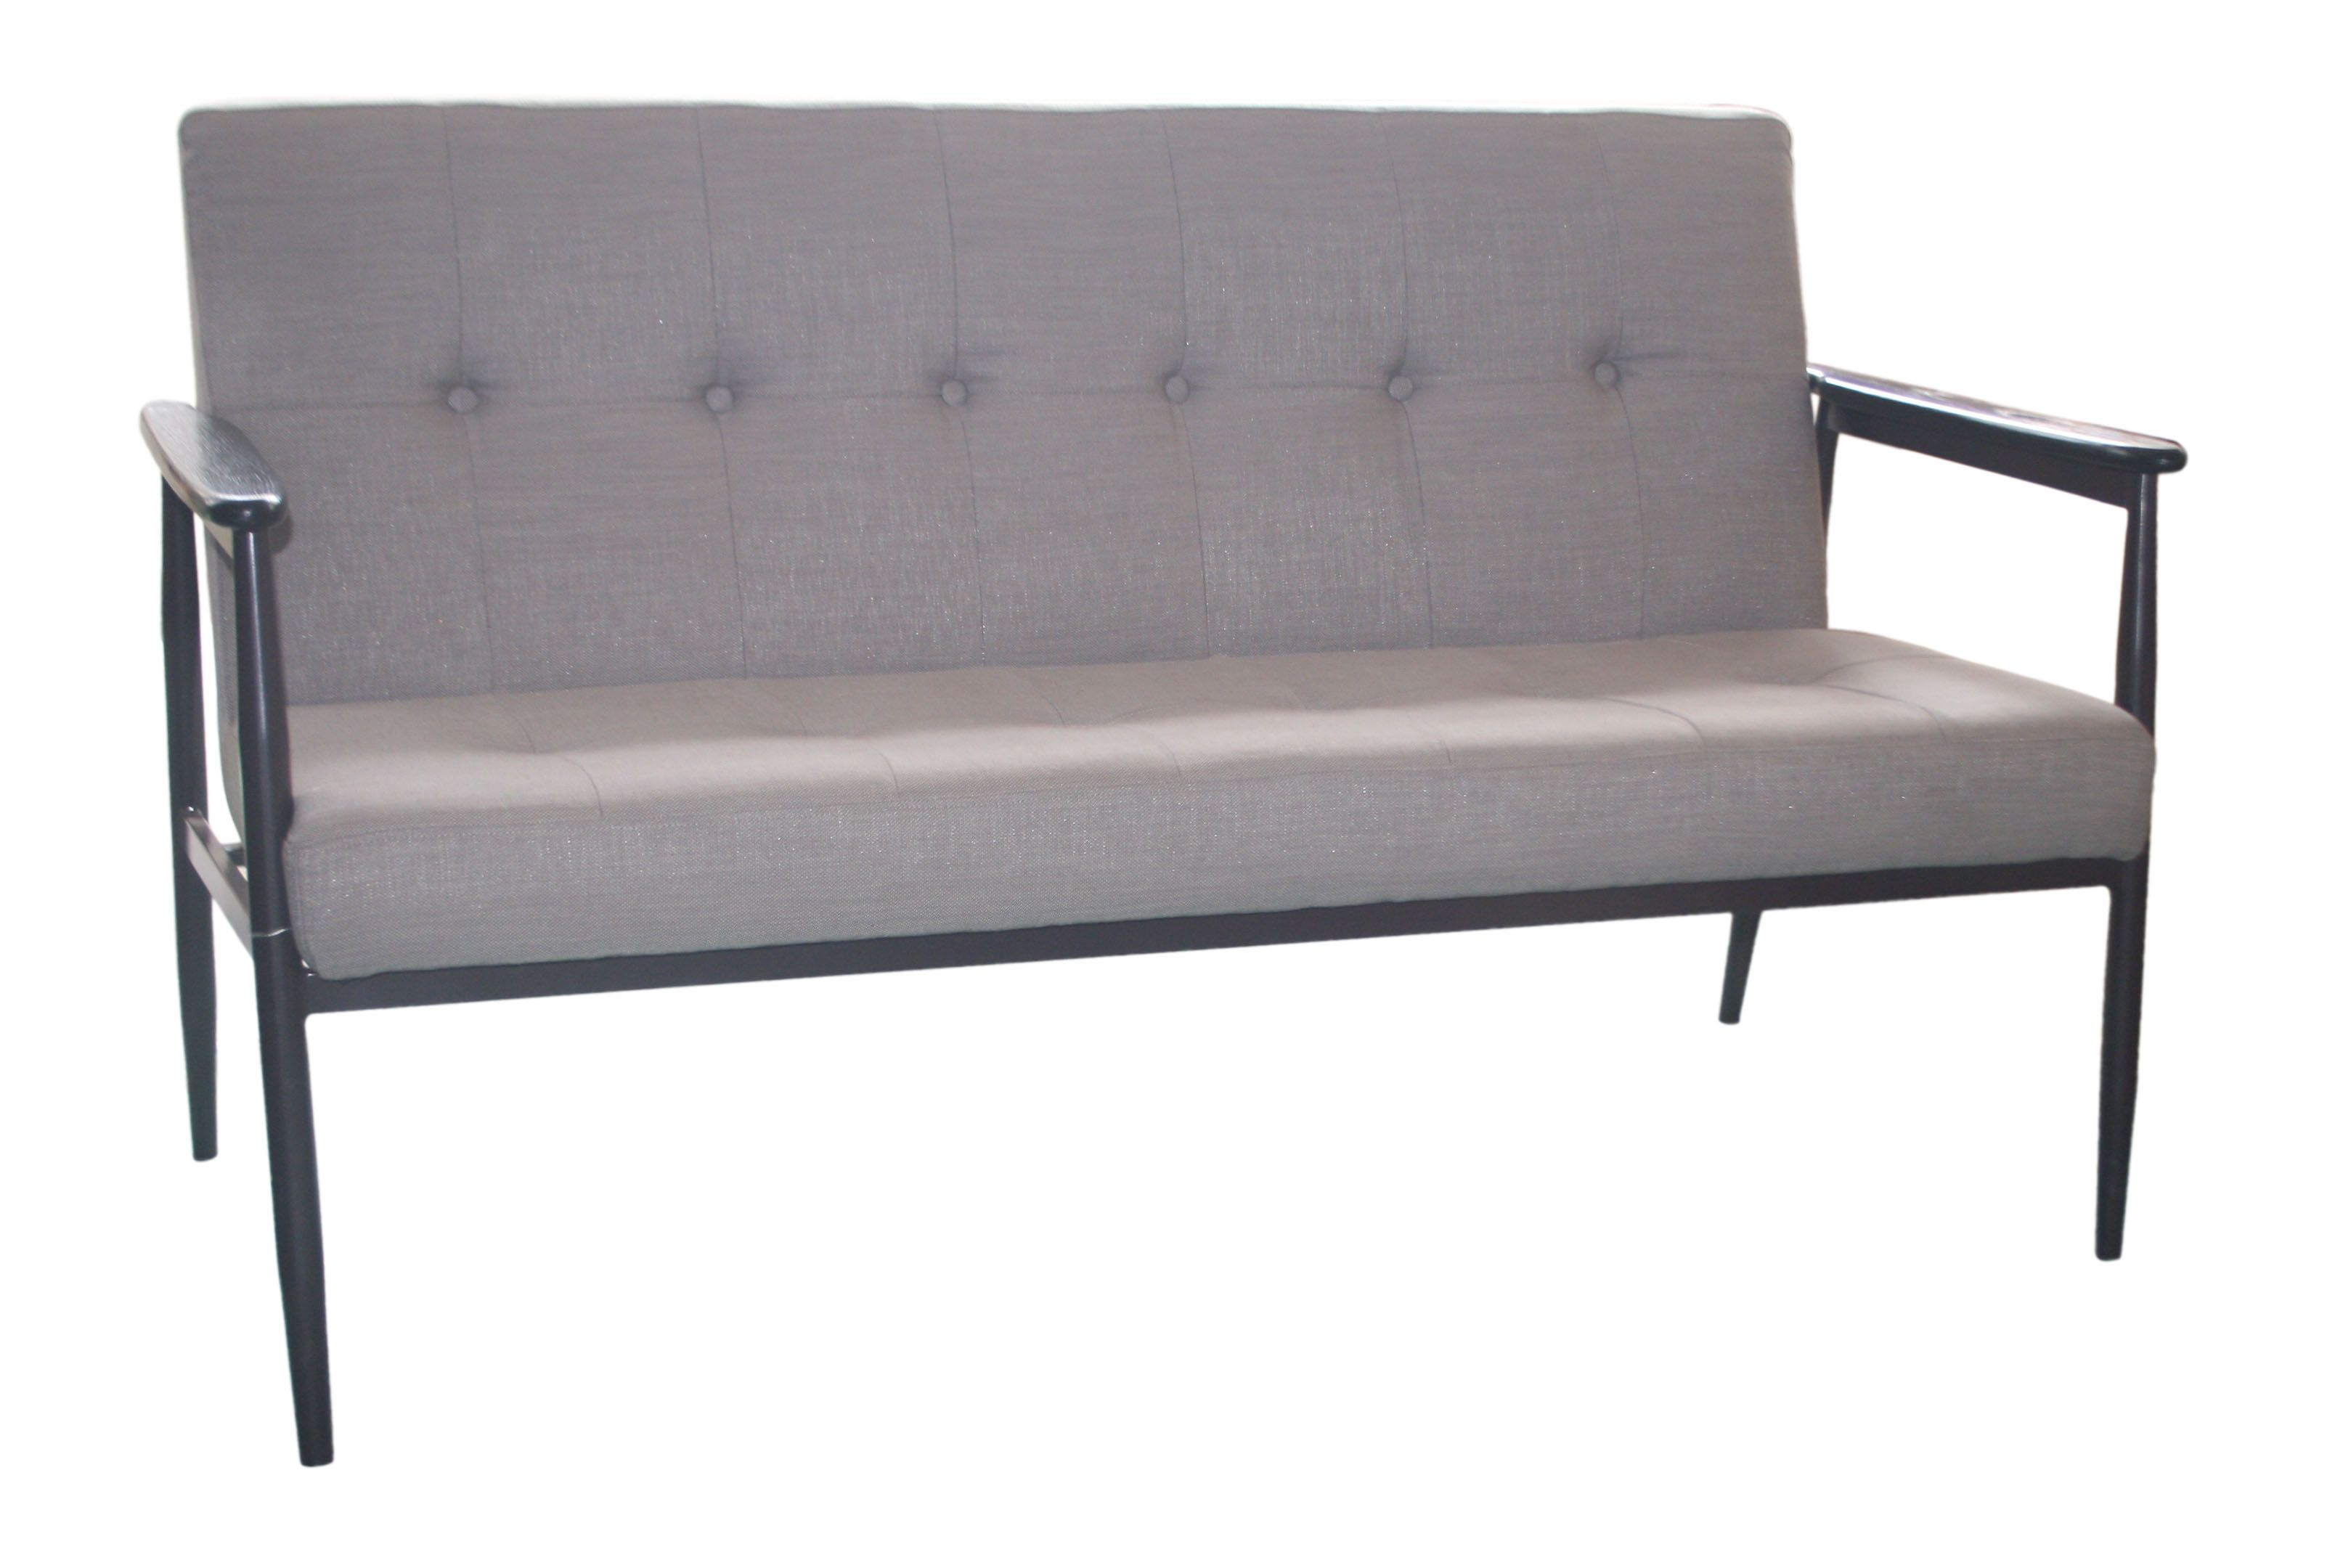 Andrew Martin Rochester Sofa Double Bed Purple 27060 Chair In Aristotle Taupe A Great Office Reception